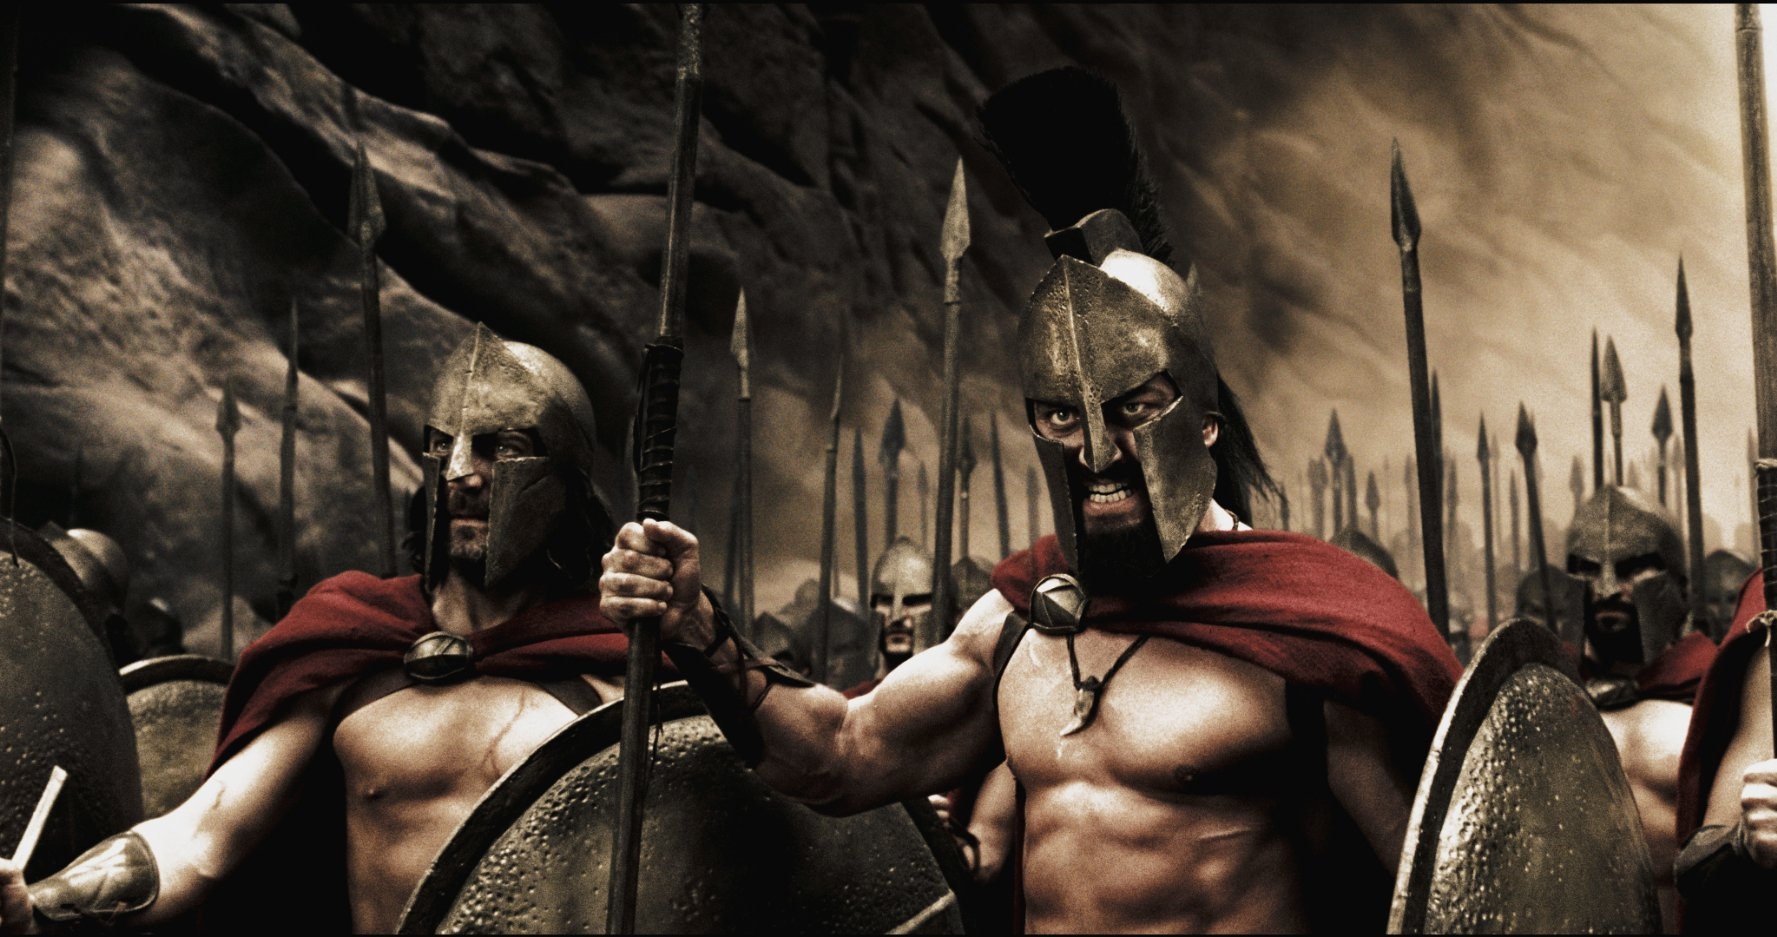 Zack Snyder's '300' has aged even worse than you might have imagined